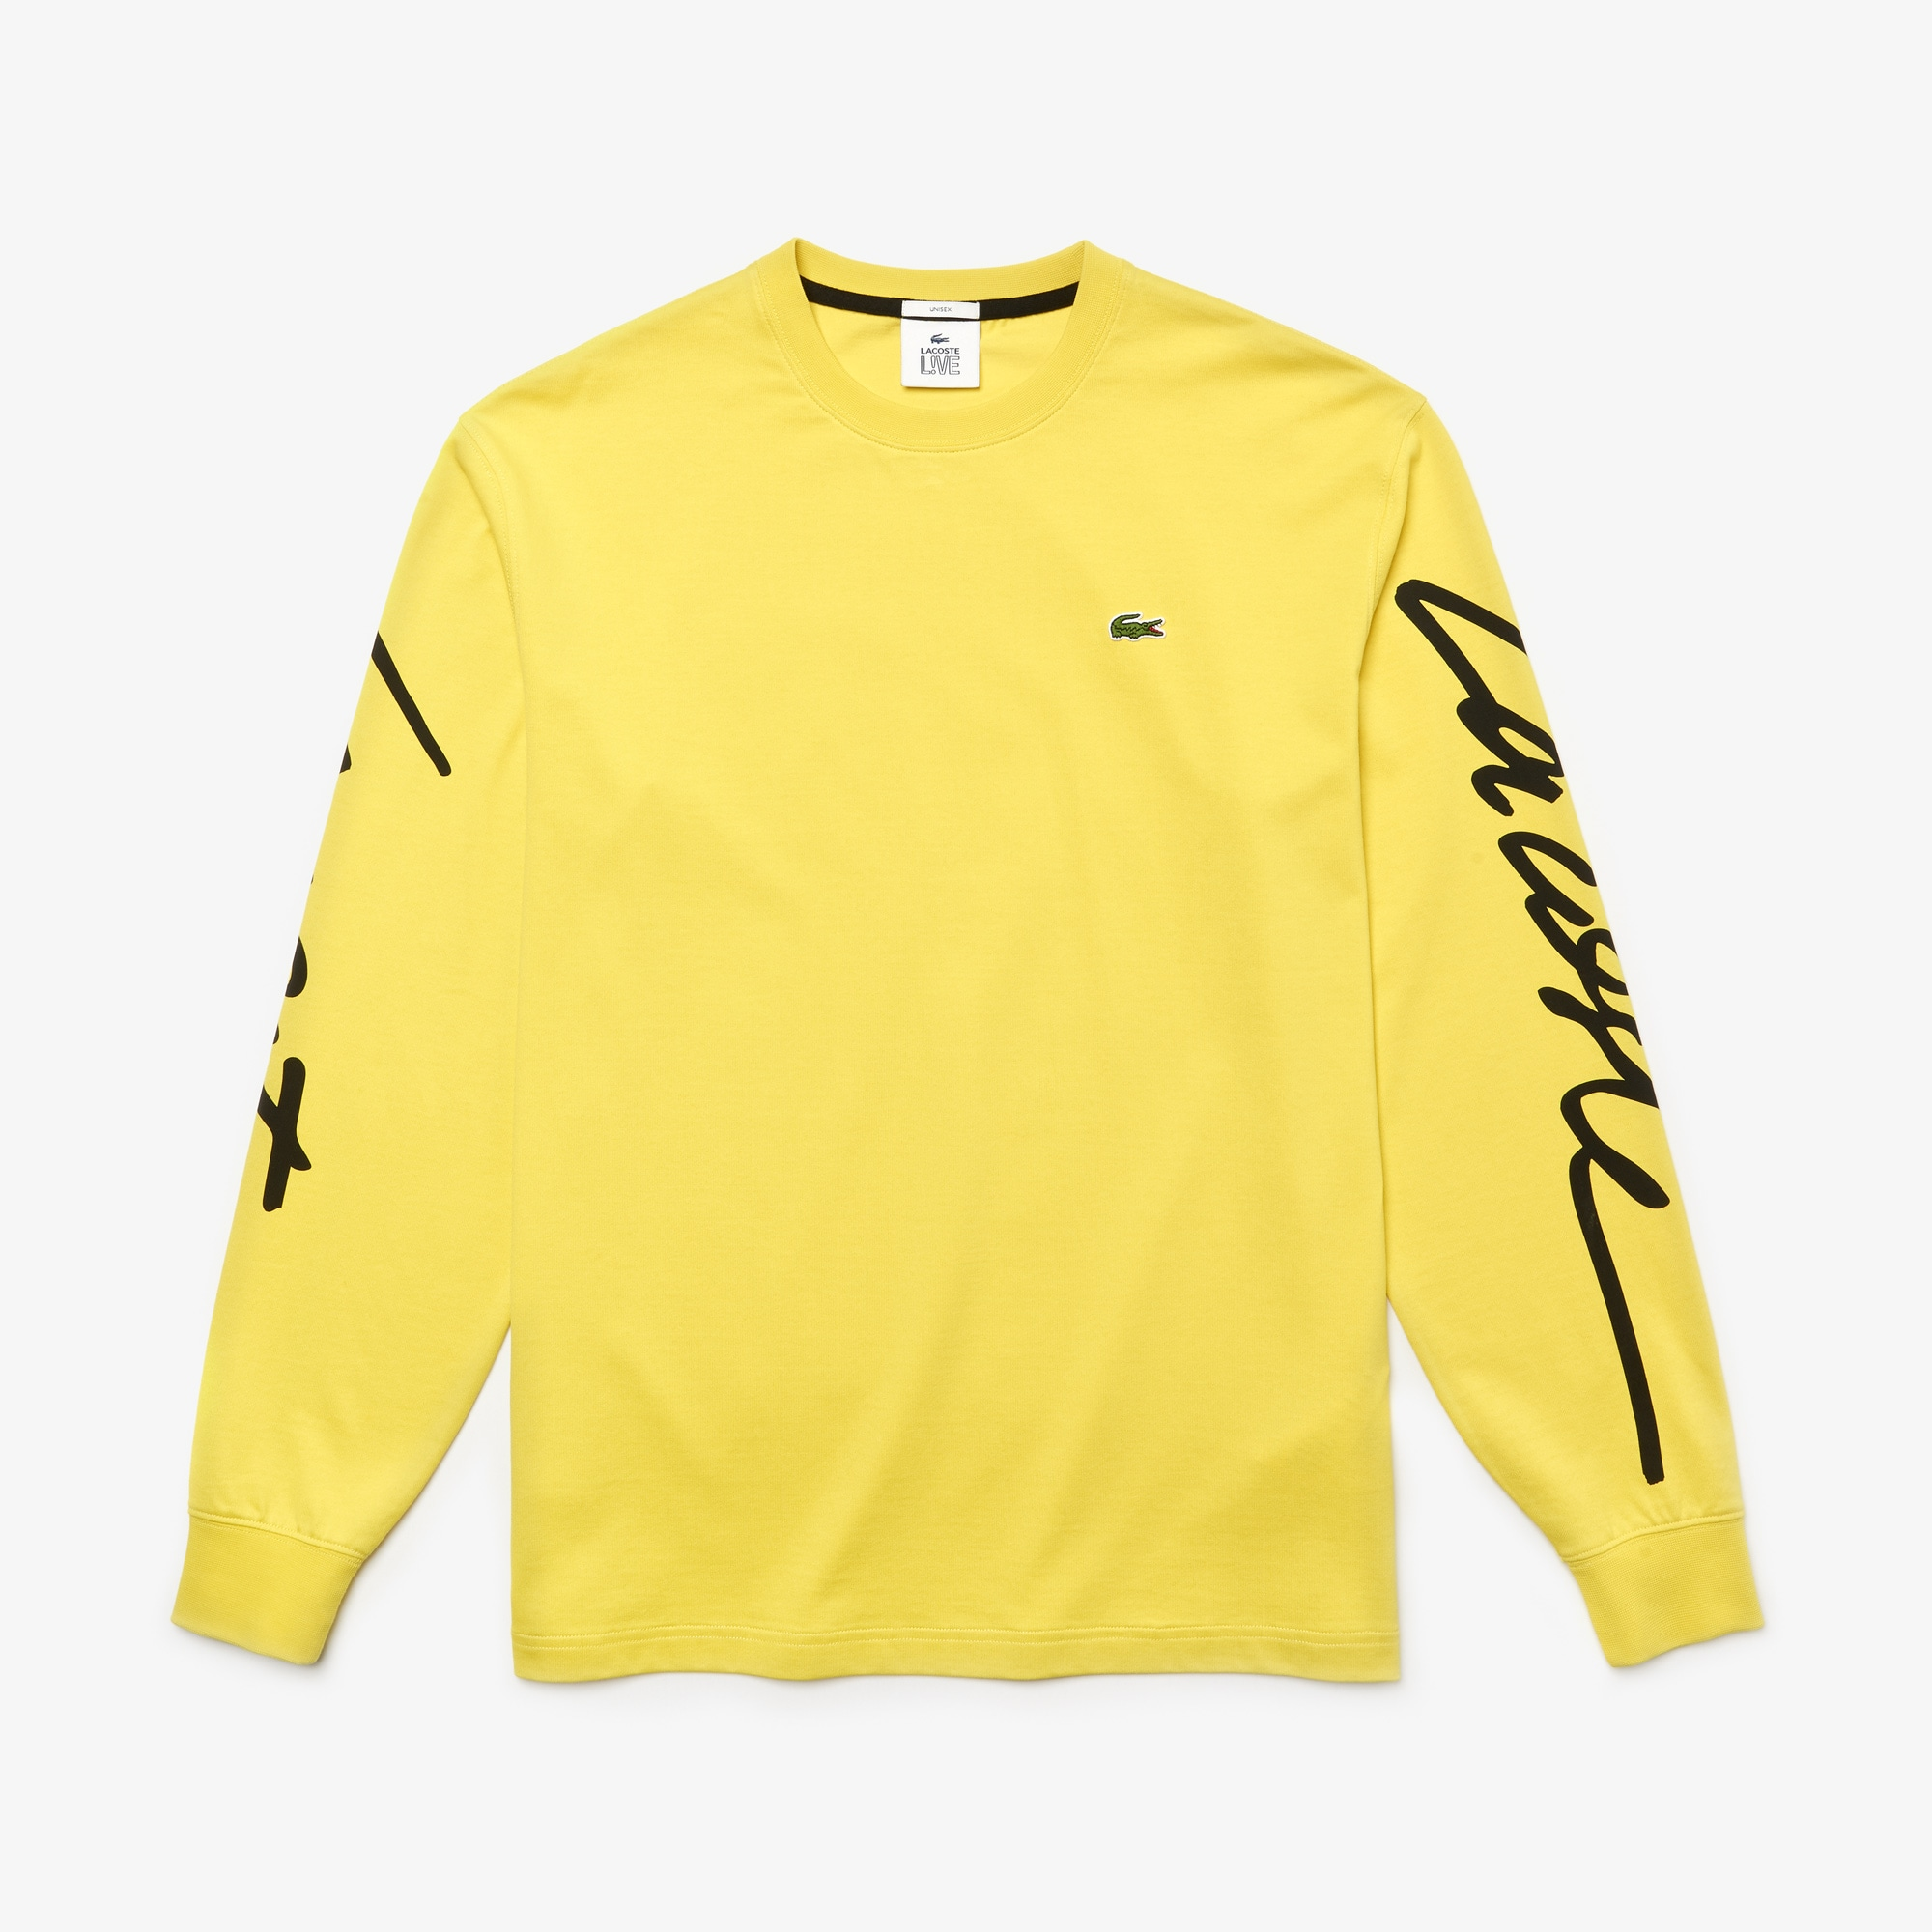 374bd88ed The Collection | LACOSTE LIVE